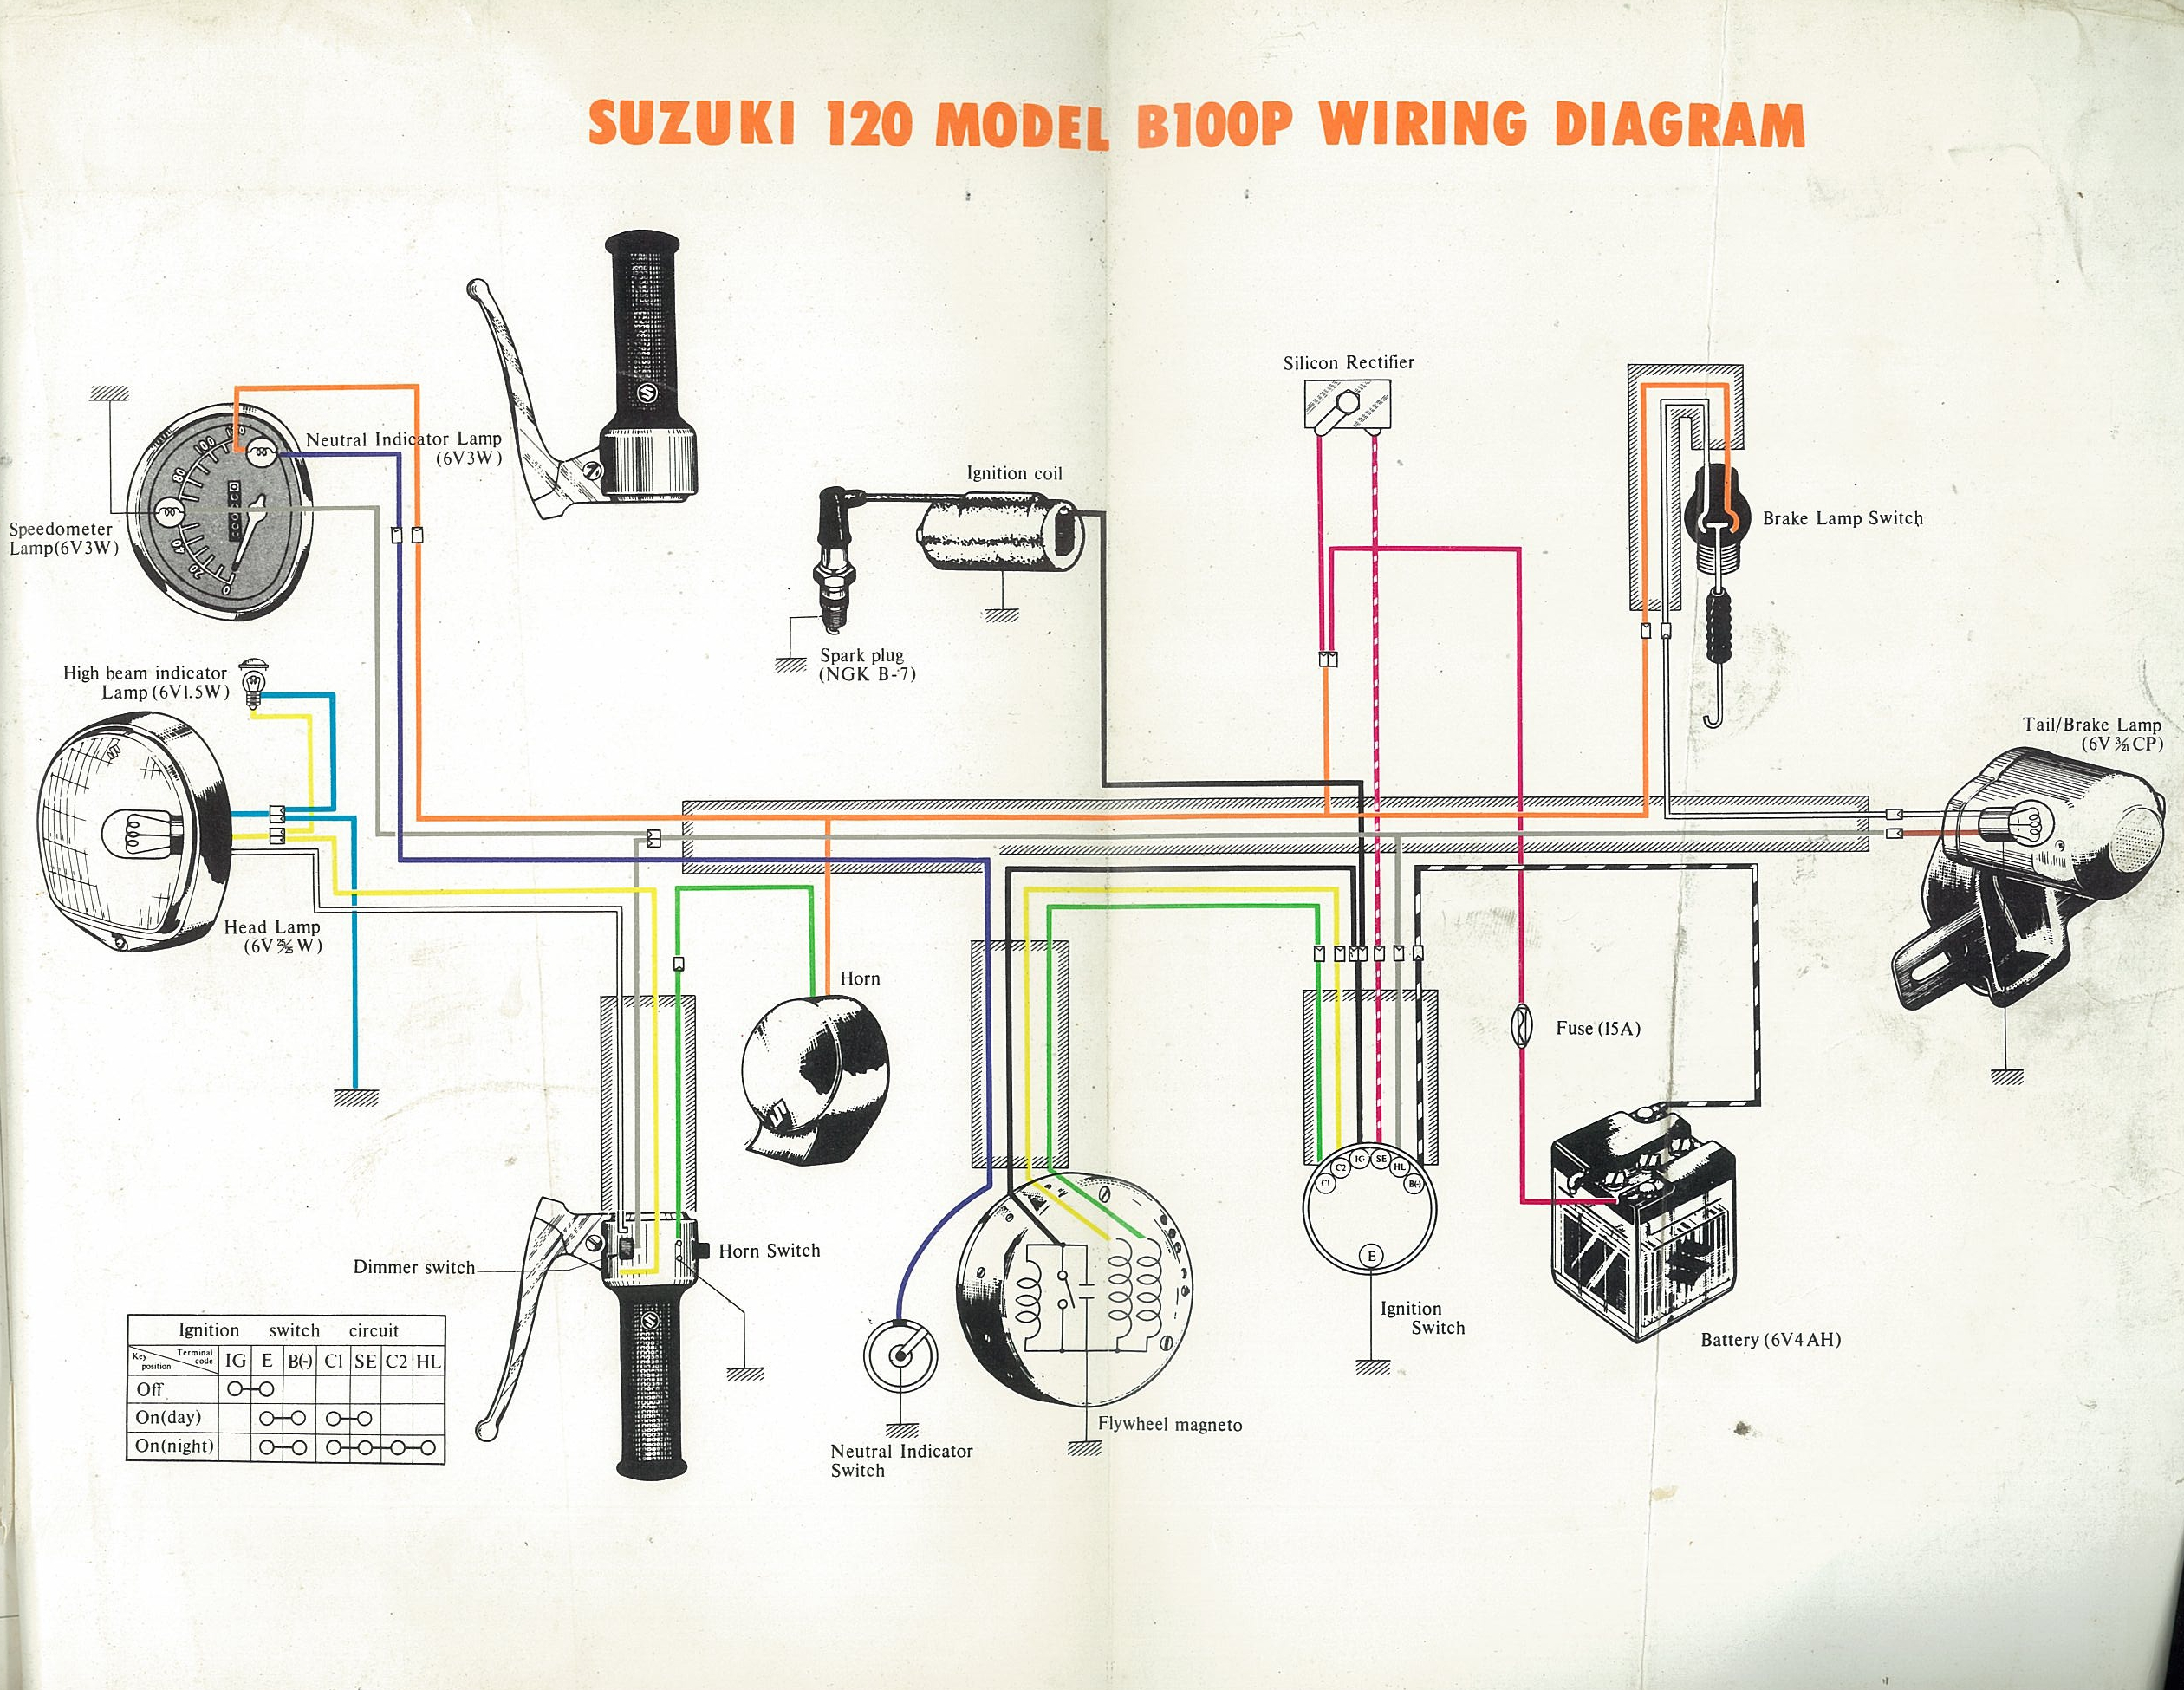 Suzuki Rv90 Wiring Diagram Data Schematics 1974 Mobile Home Electrical 1972 T500 Detailed Rh Keyplusrubber Com Rv 125 1971